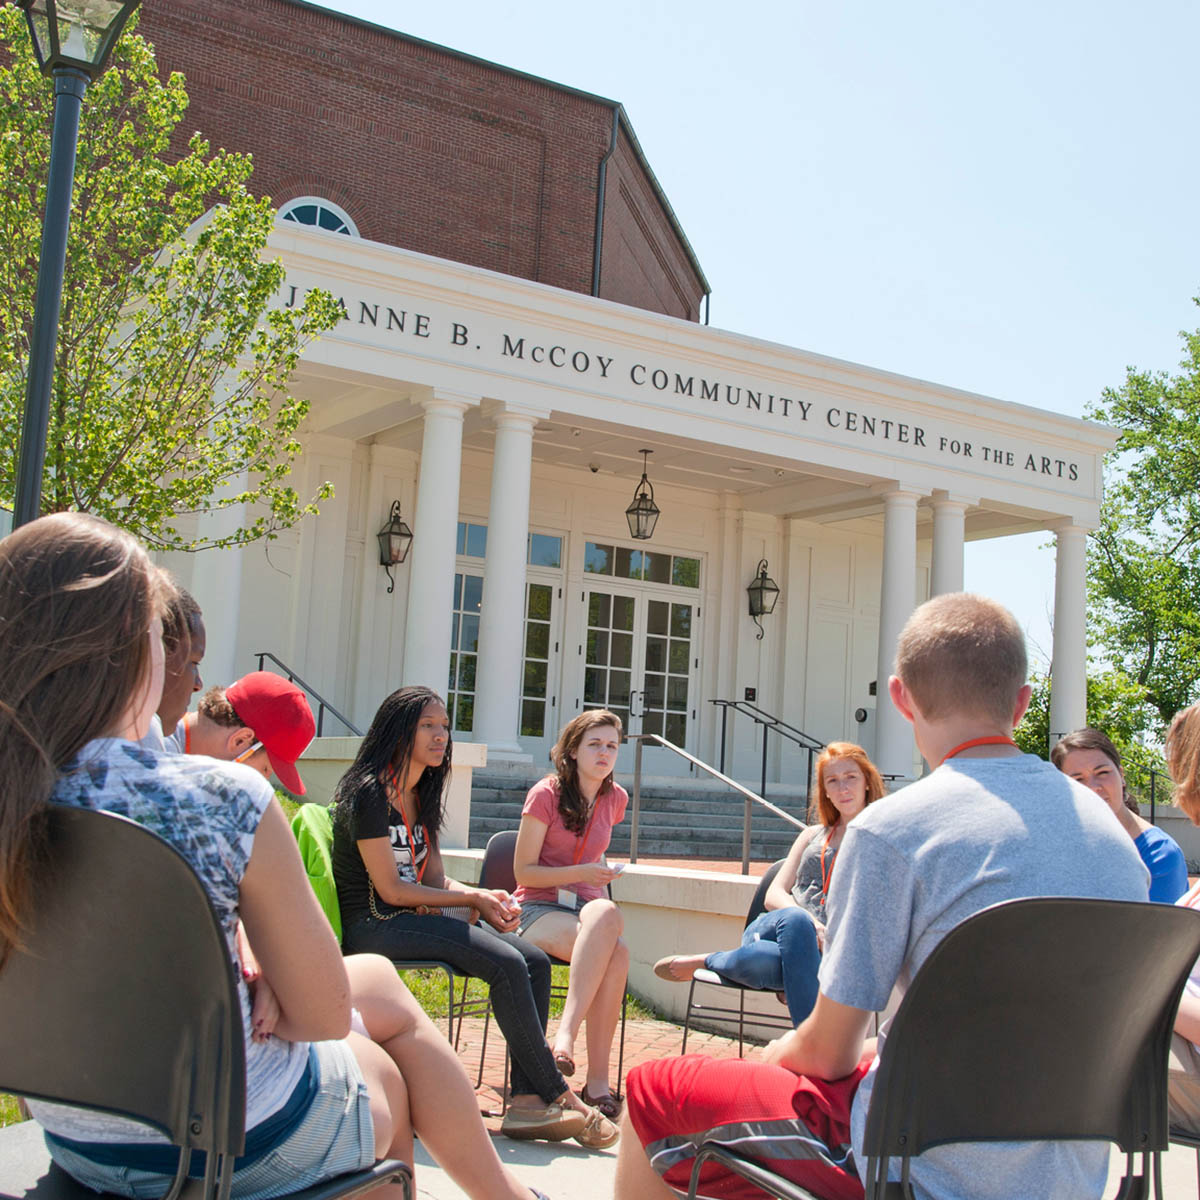 Students seated outside having a discussion.